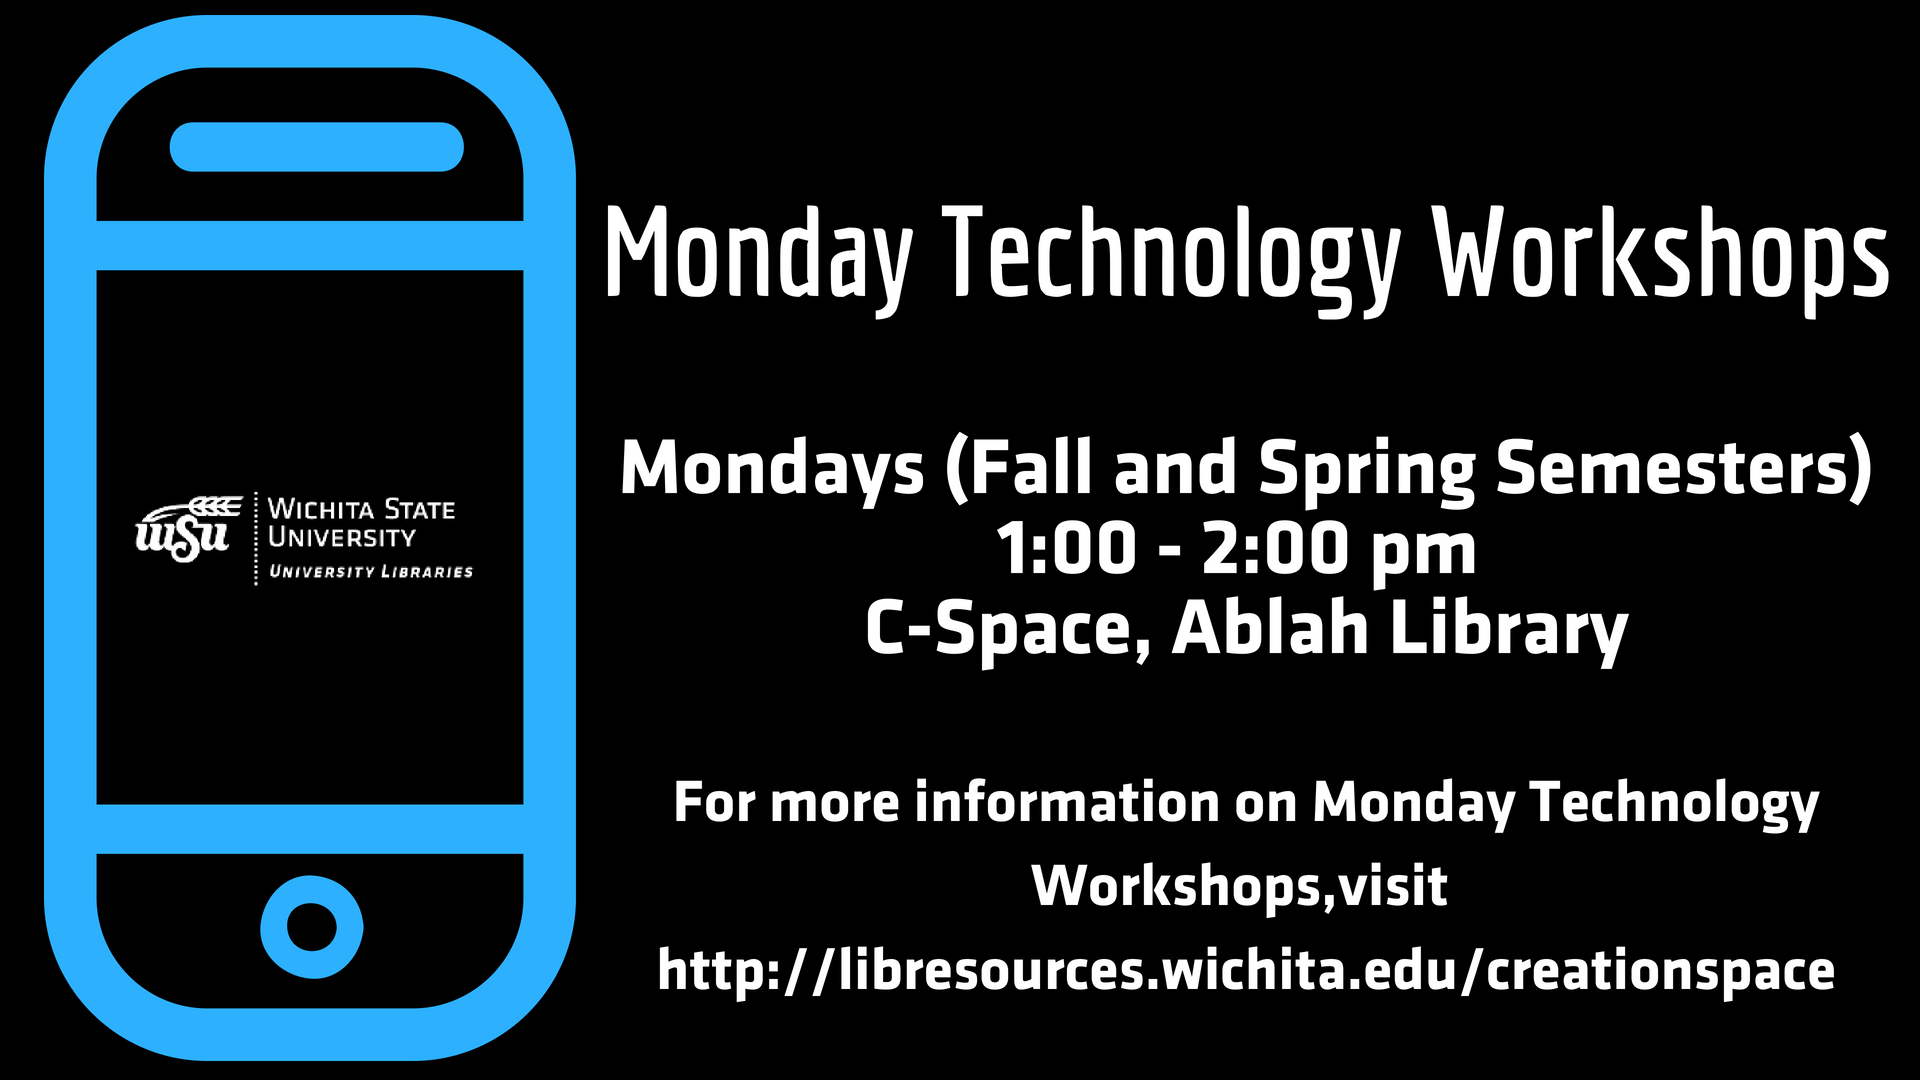 Monday Technology Workshops - Amazon Web Services